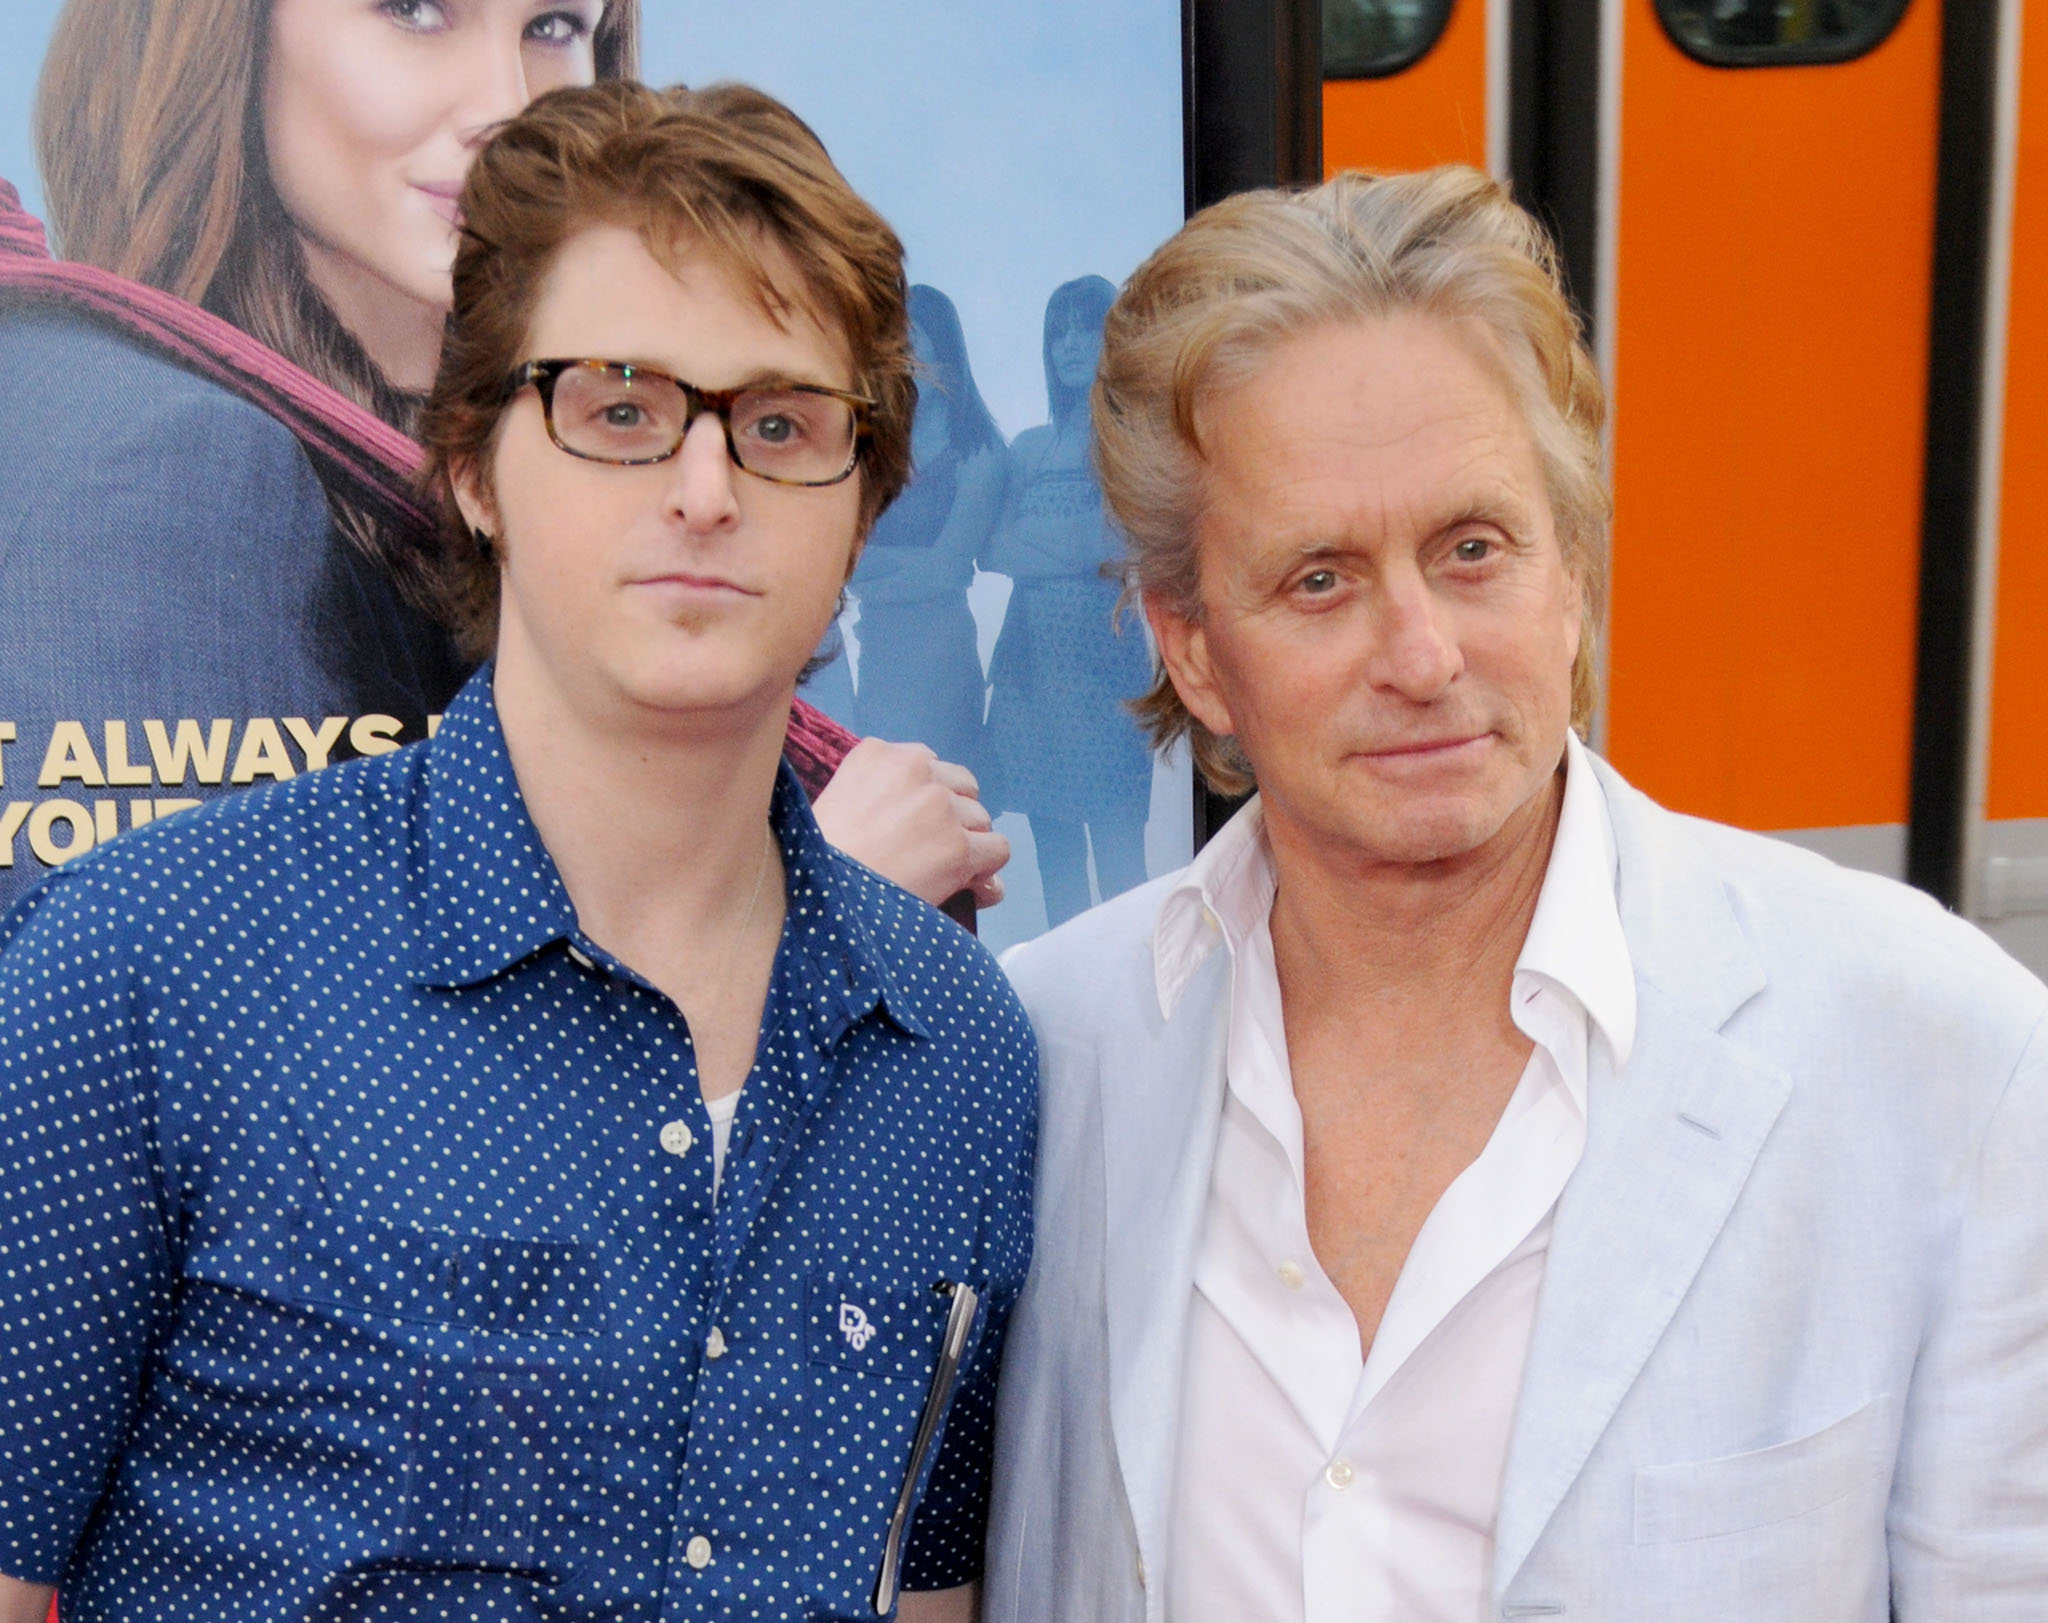 "April 27, 2009 Hollywood, Ca. Cameron Douglas and Michael Douglas ""Ghosts of Girlfriends Past"" World Premiere Held at Grauman's Chinese Theatre © Gregg DeGuire / AFF-USA.COM"